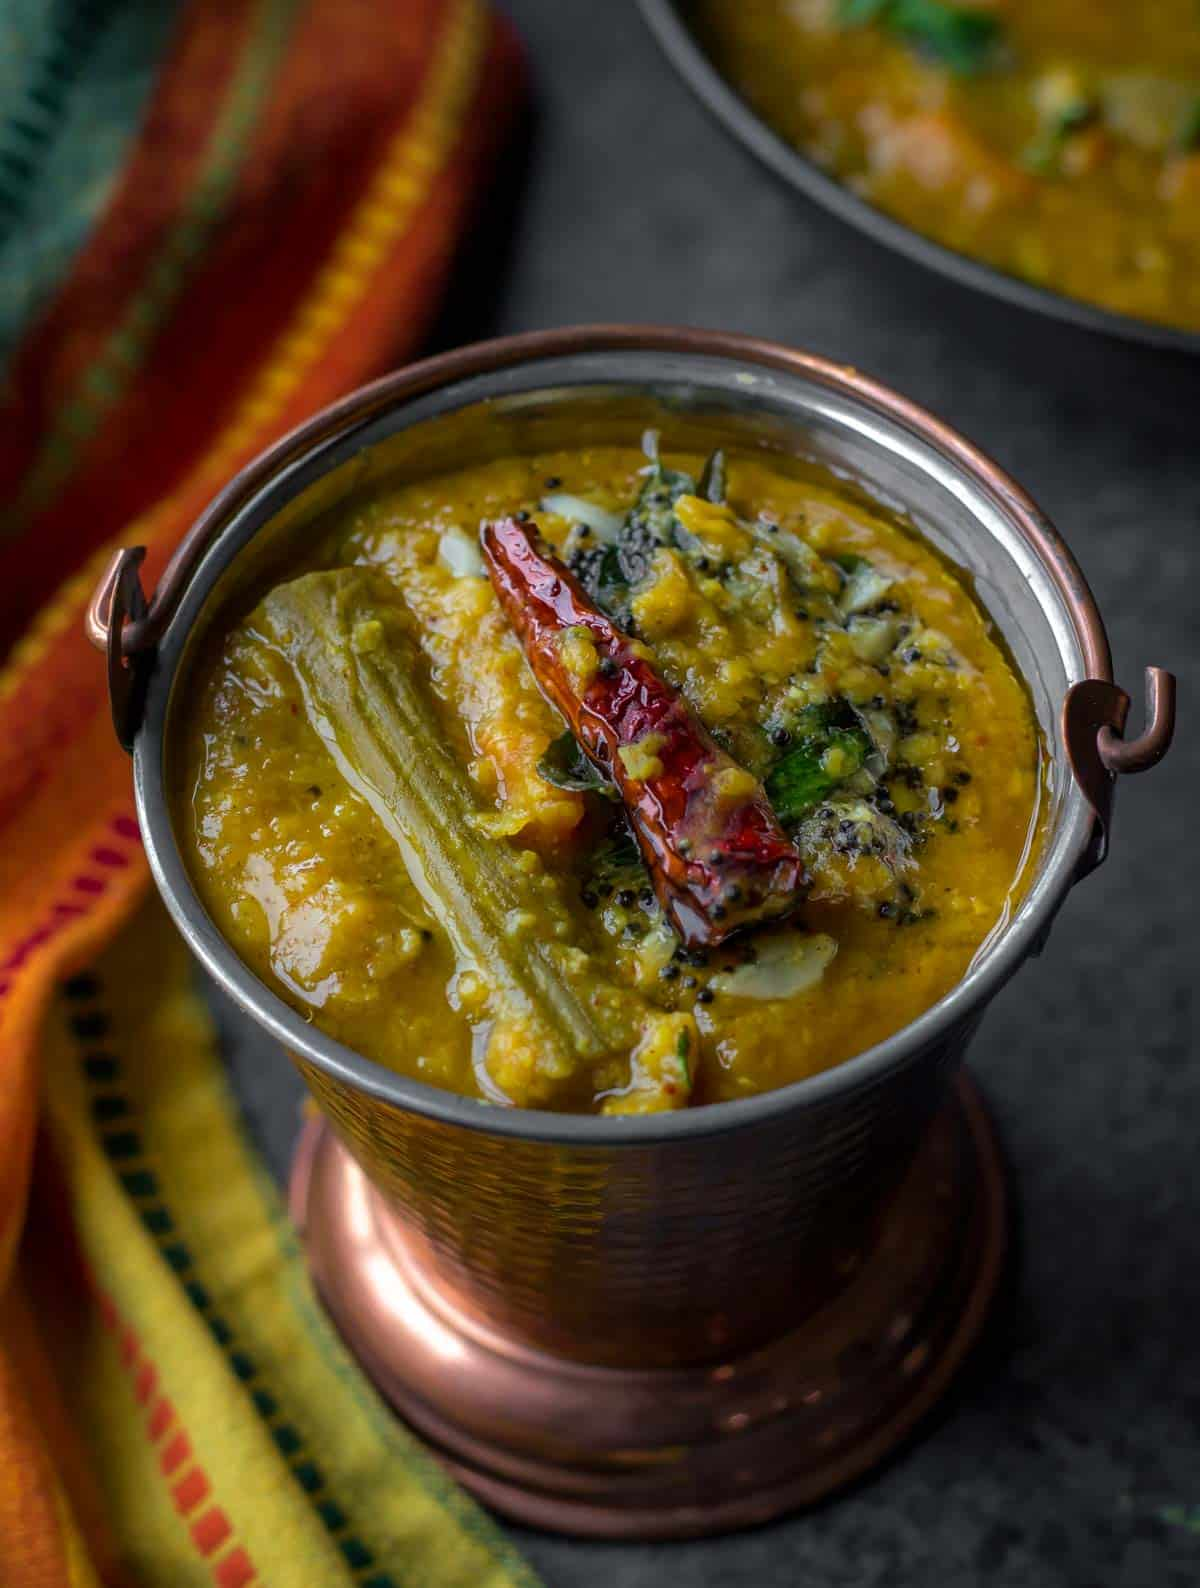 Sambar or Sambhar - Make this tangy and mildly spicy lentil-vegetable stew from the southern part of India and serve it alongside idlis or dosas for a wholesome breakfast.